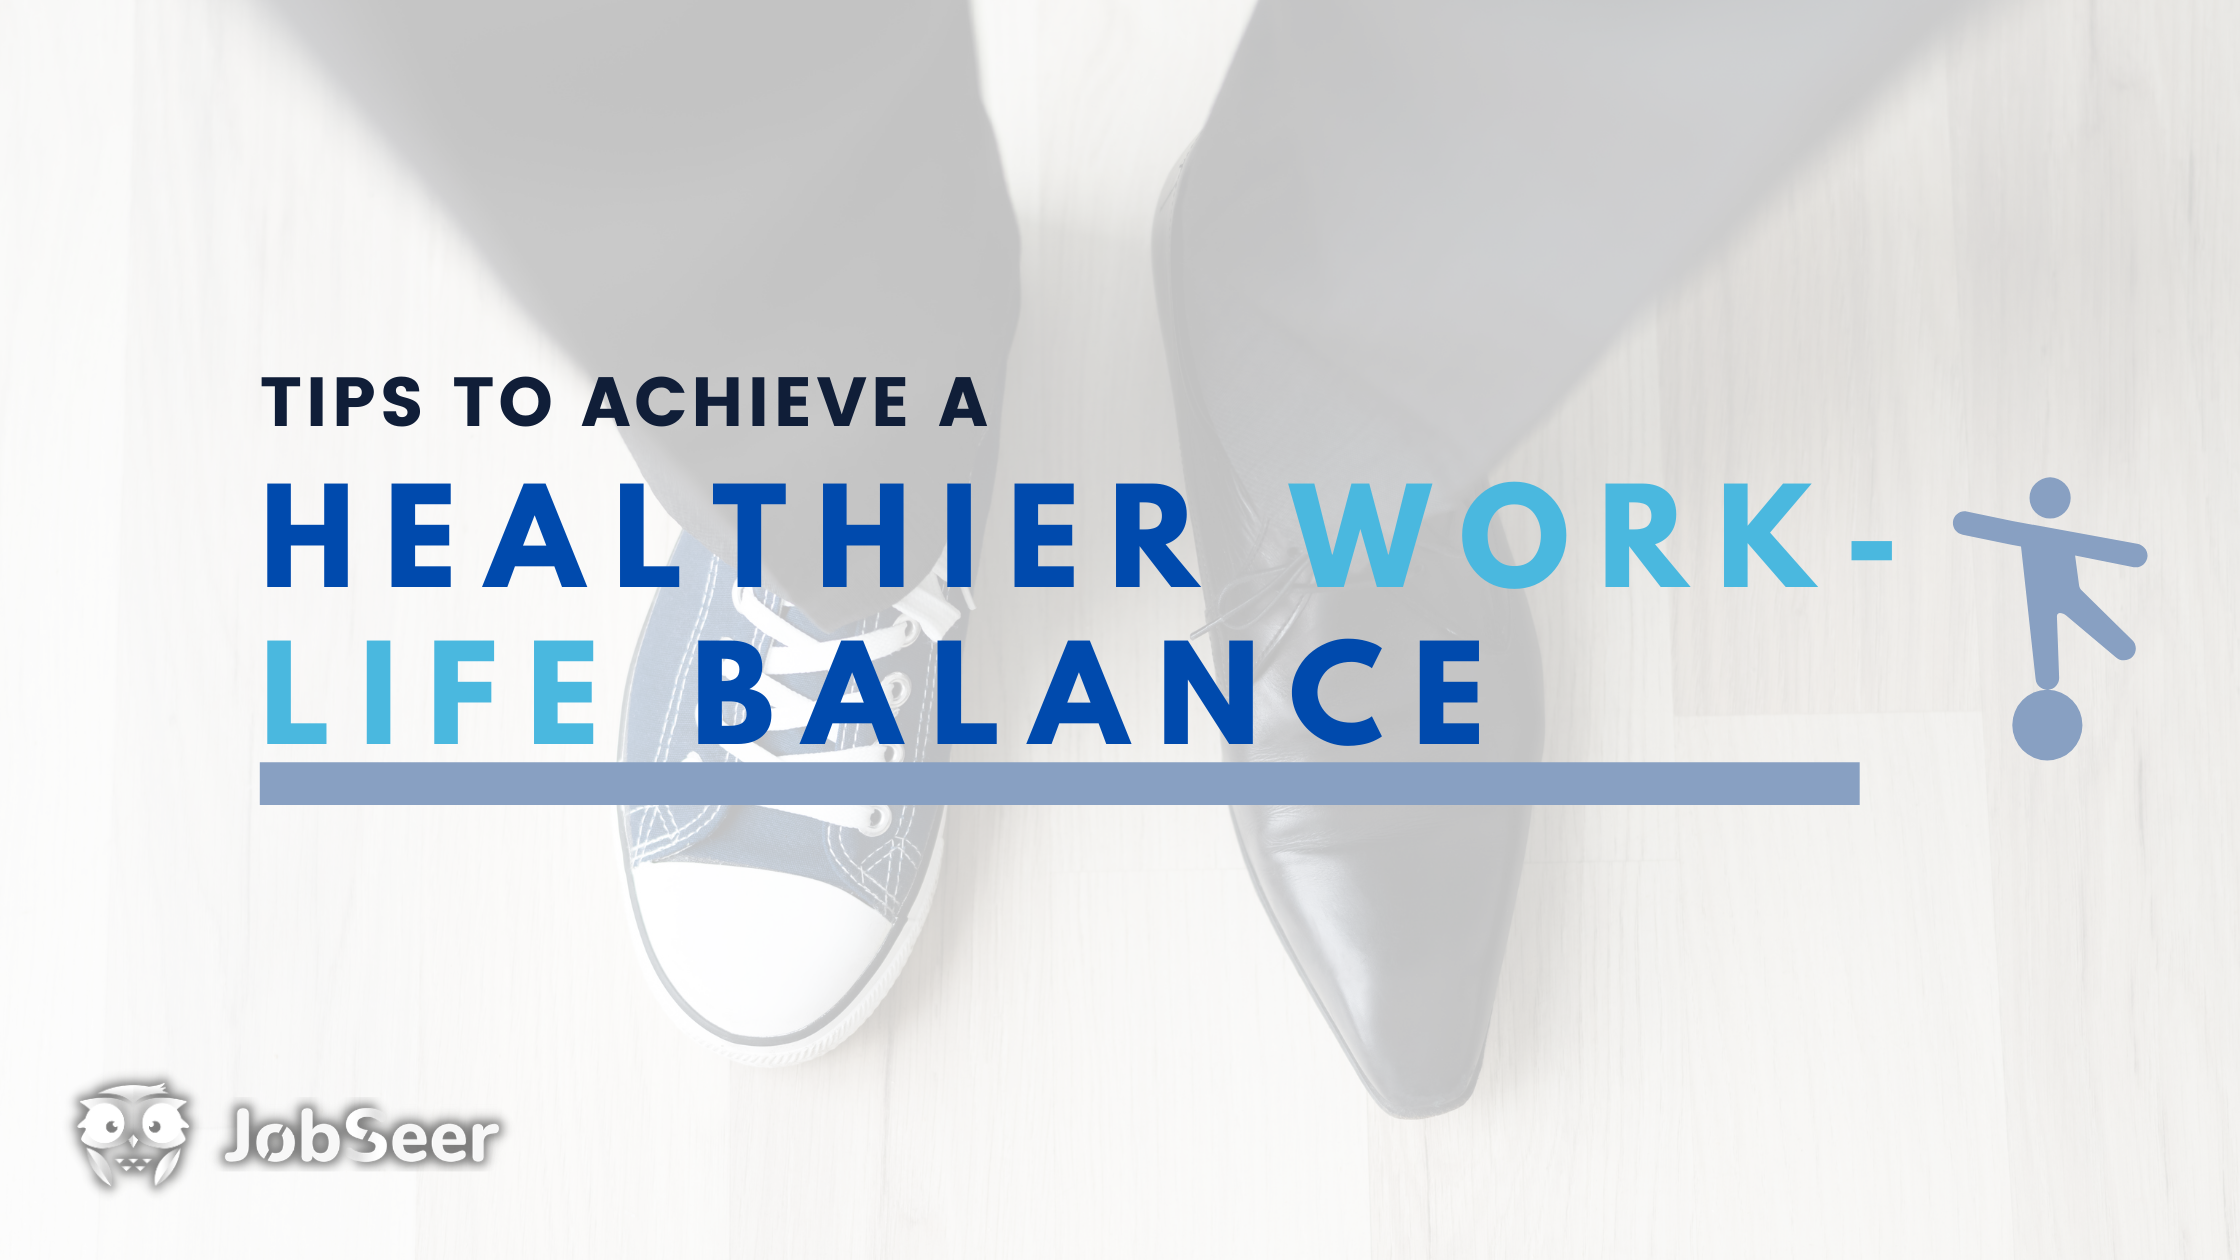 Tips To Achieve A Healthier Work-Life Balance